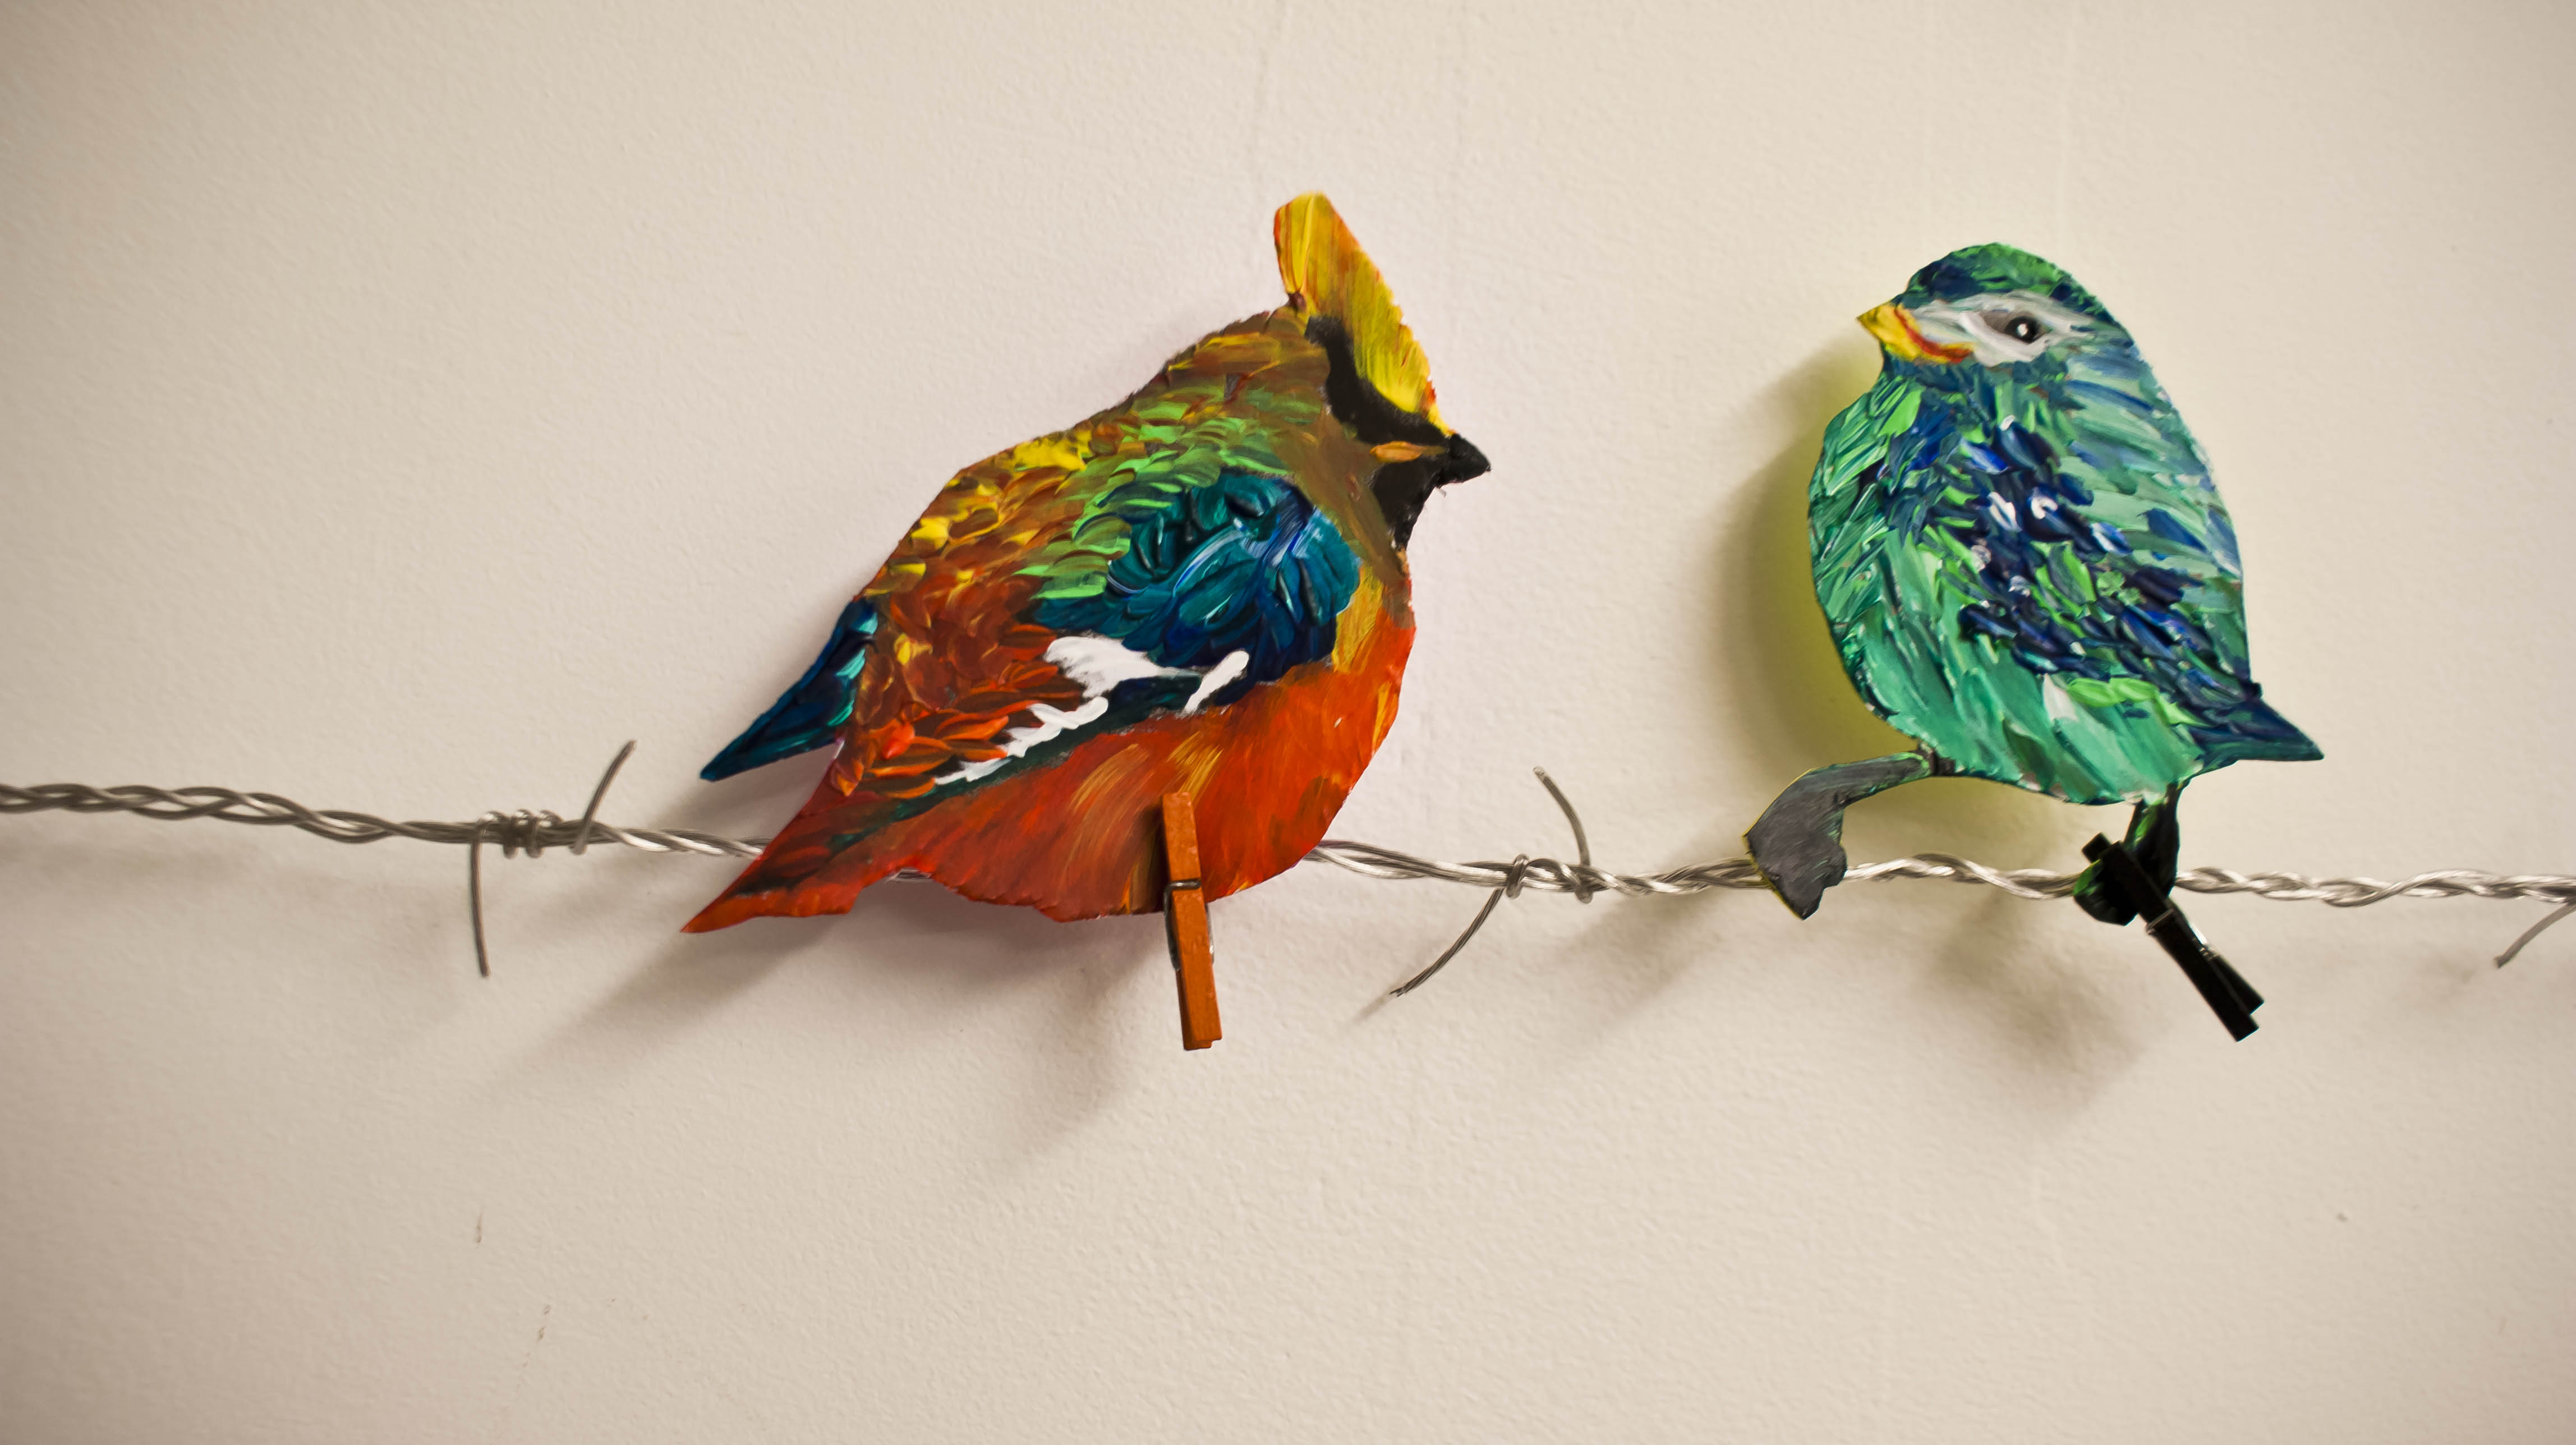 Birds with Personality